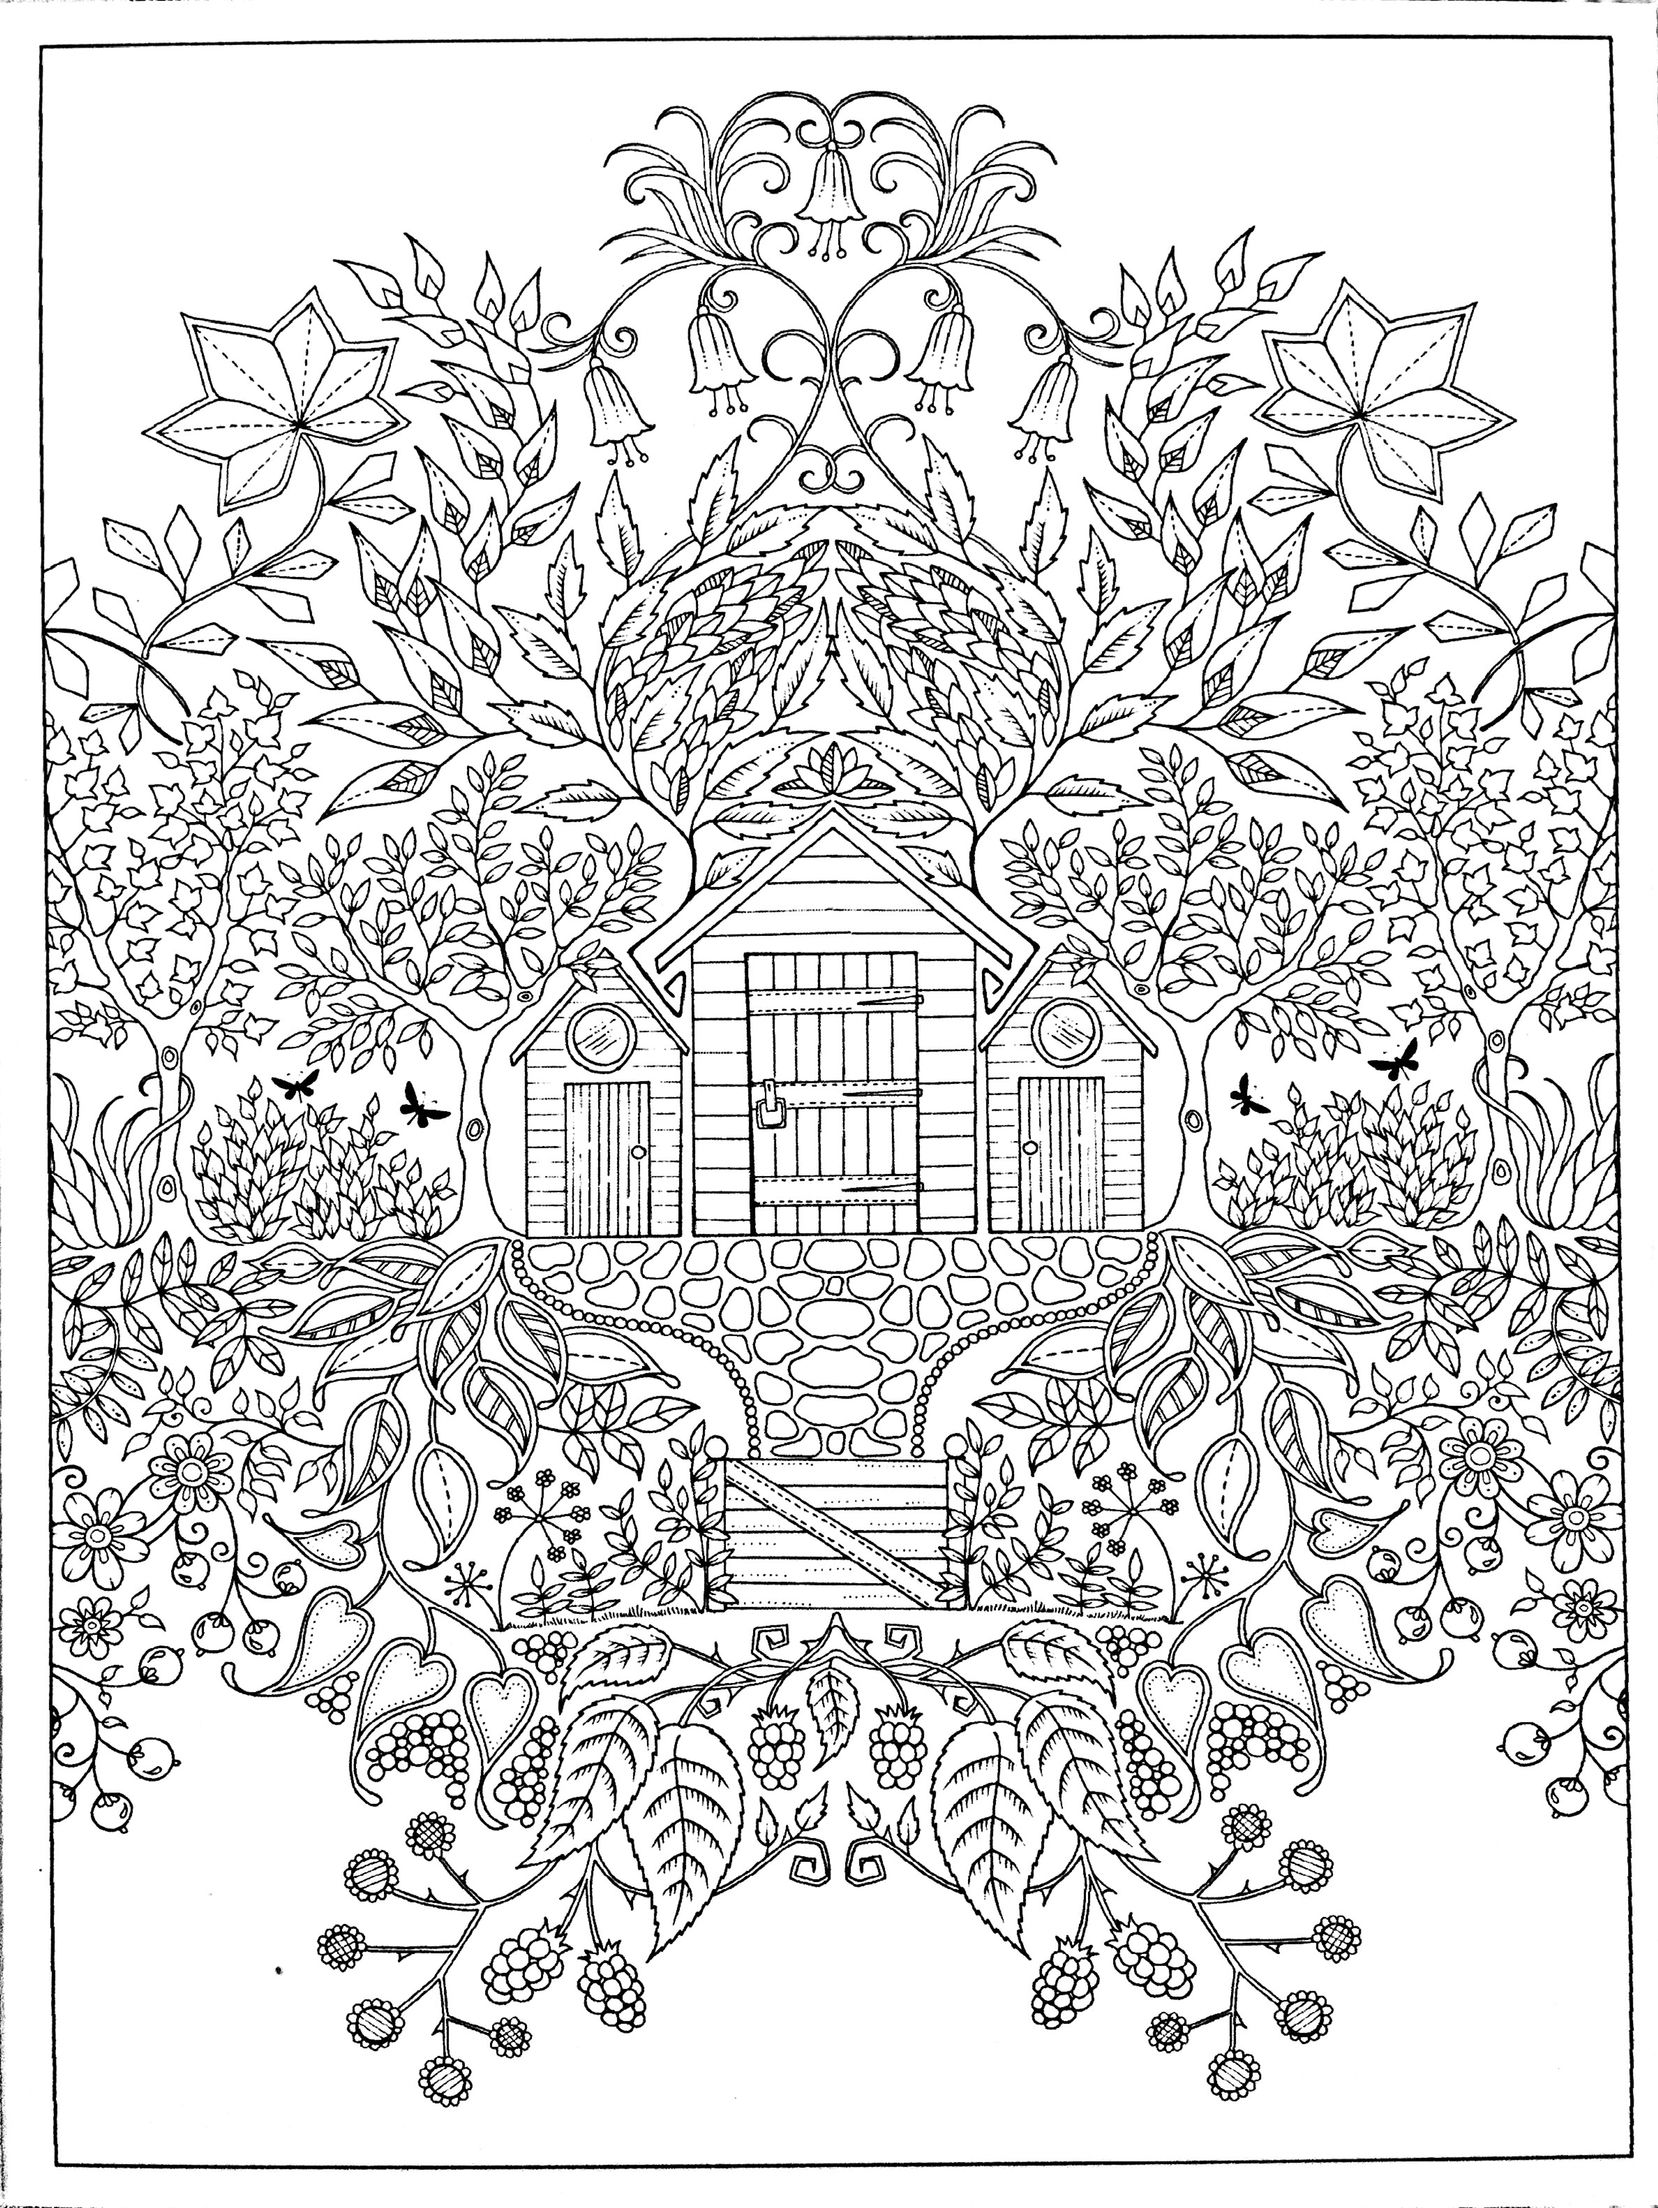 Pin On Colouring In Pages